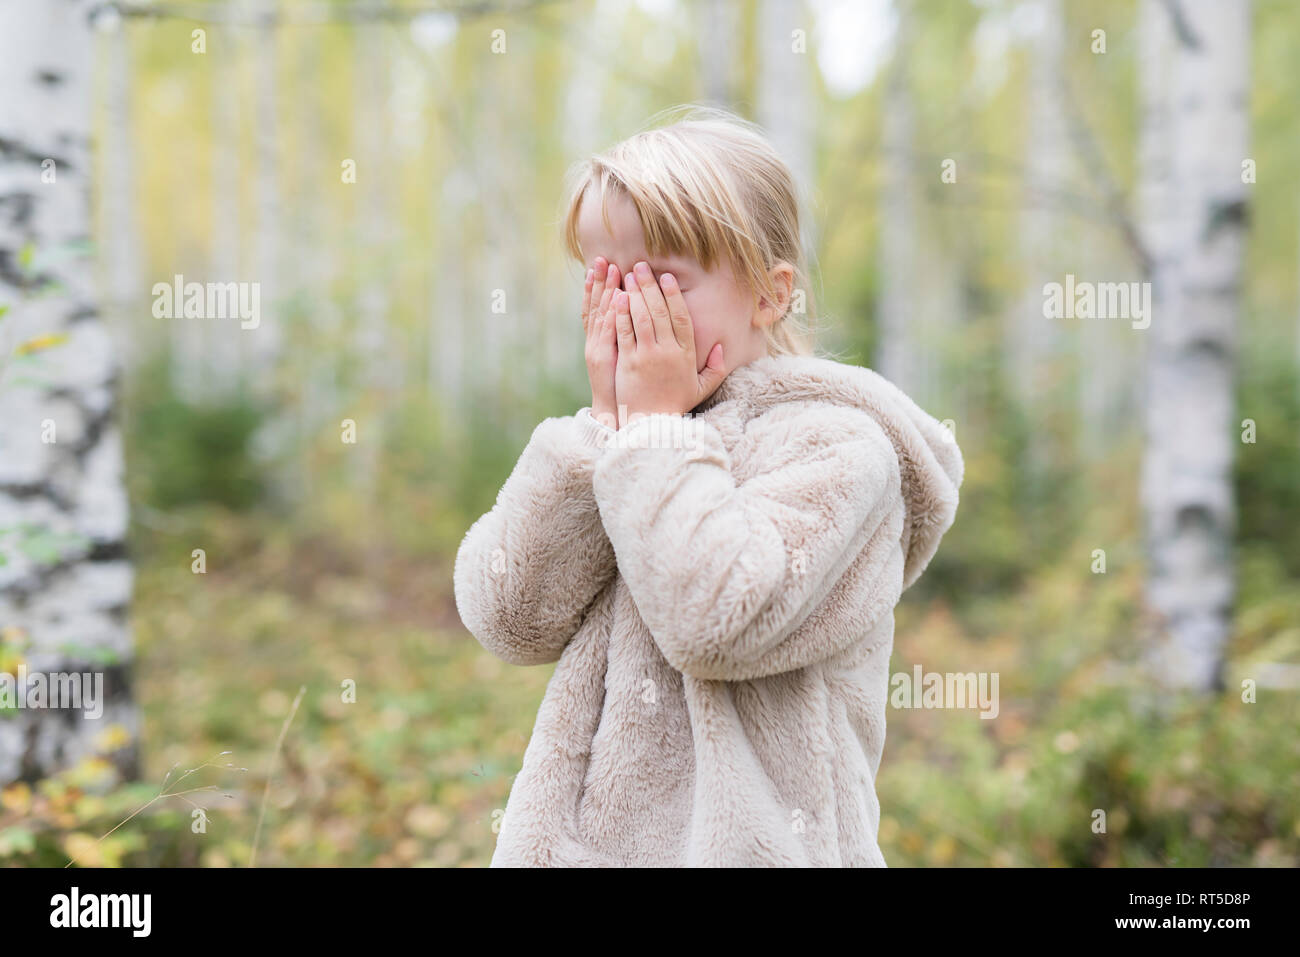 Blond girl playing Hide and Seek in a forest - Stock Image